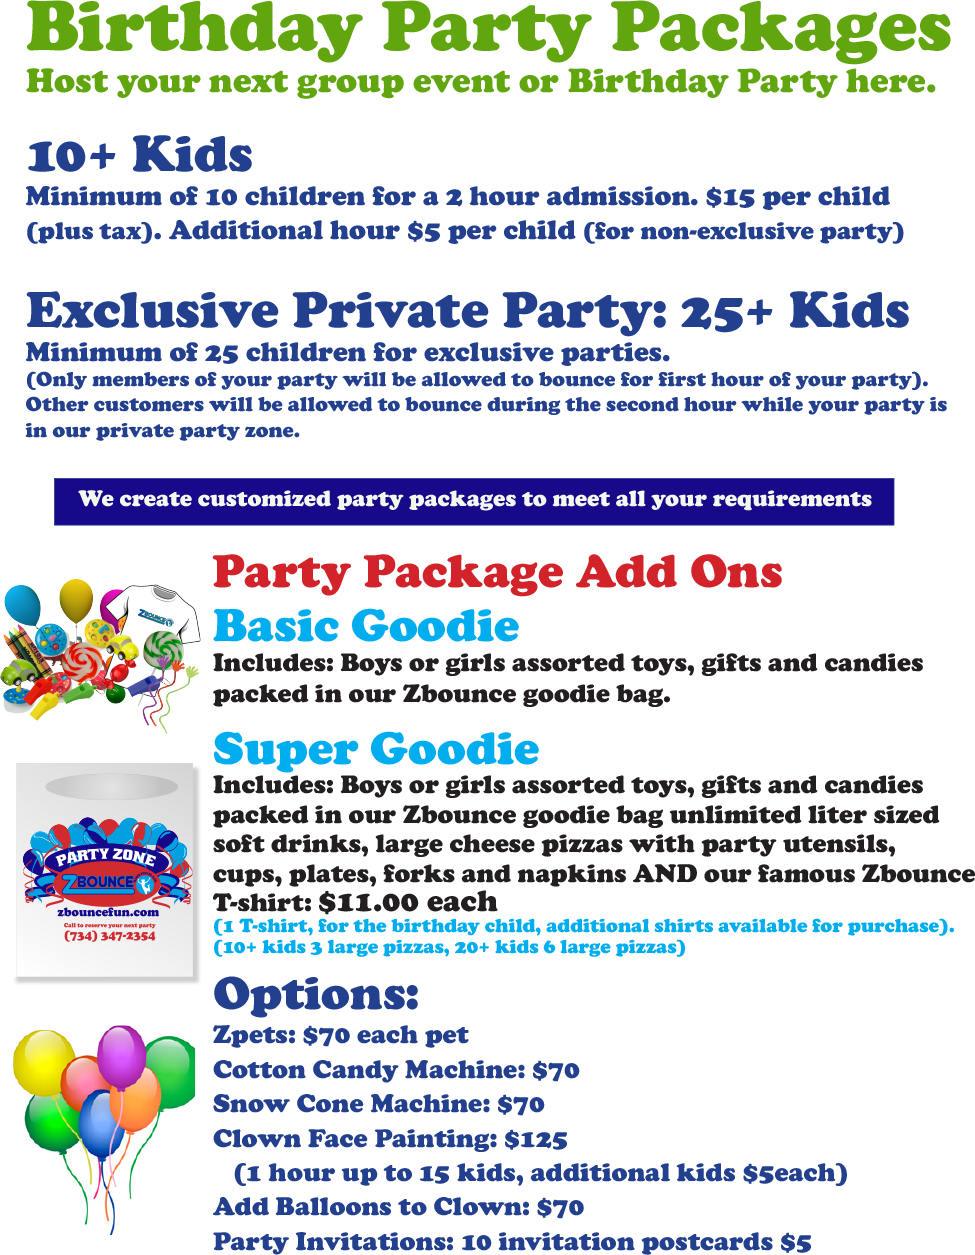 image about Monkey Joes Coupons Printable referred to as Discount codes for jump u birthday get-togethers / Disney discount codes